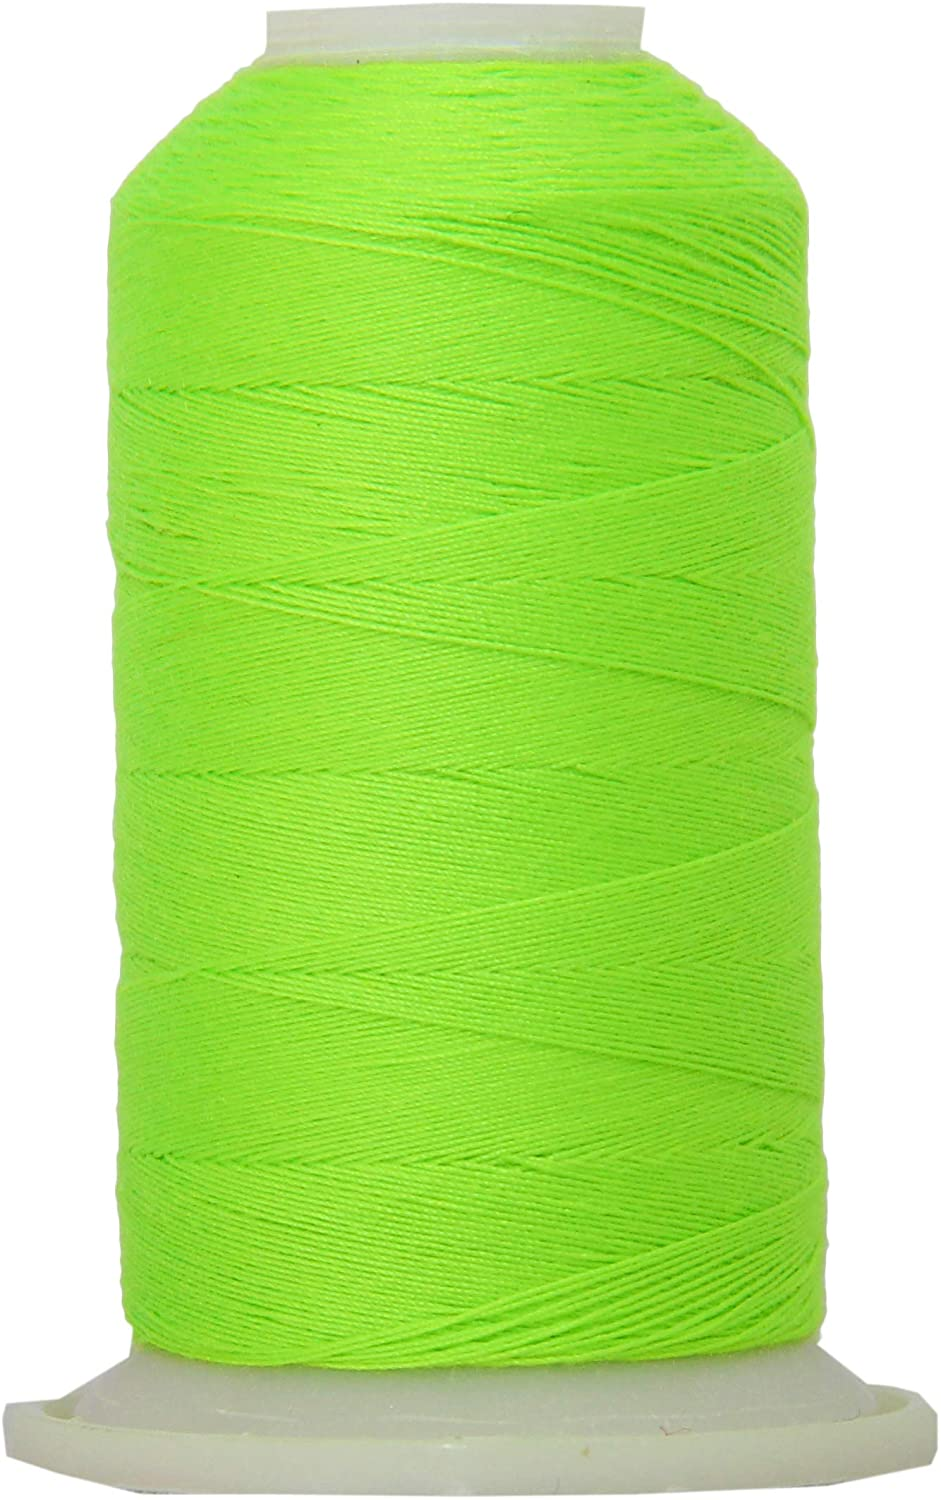 Threadart Polyester All-Purpose Sewing Thread- 600m - 50S/3 - Neon Green